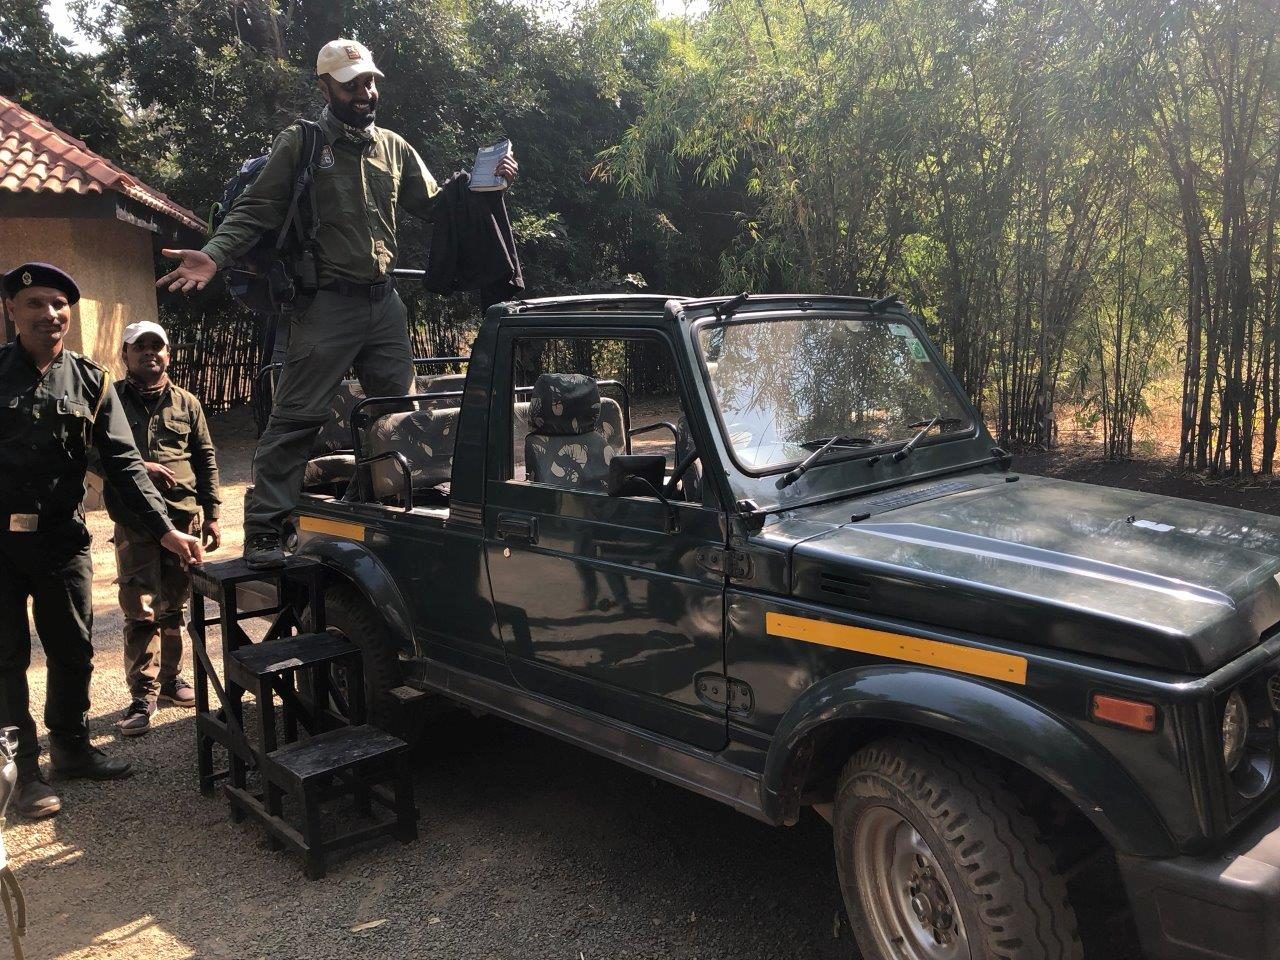 A Gypsy, an open-aired, four-wheel-drive safari vehicle necessary in the back roads of India provides a raised seating area where you wait with a hot water bottle and Nat Hab blanket on your lap.